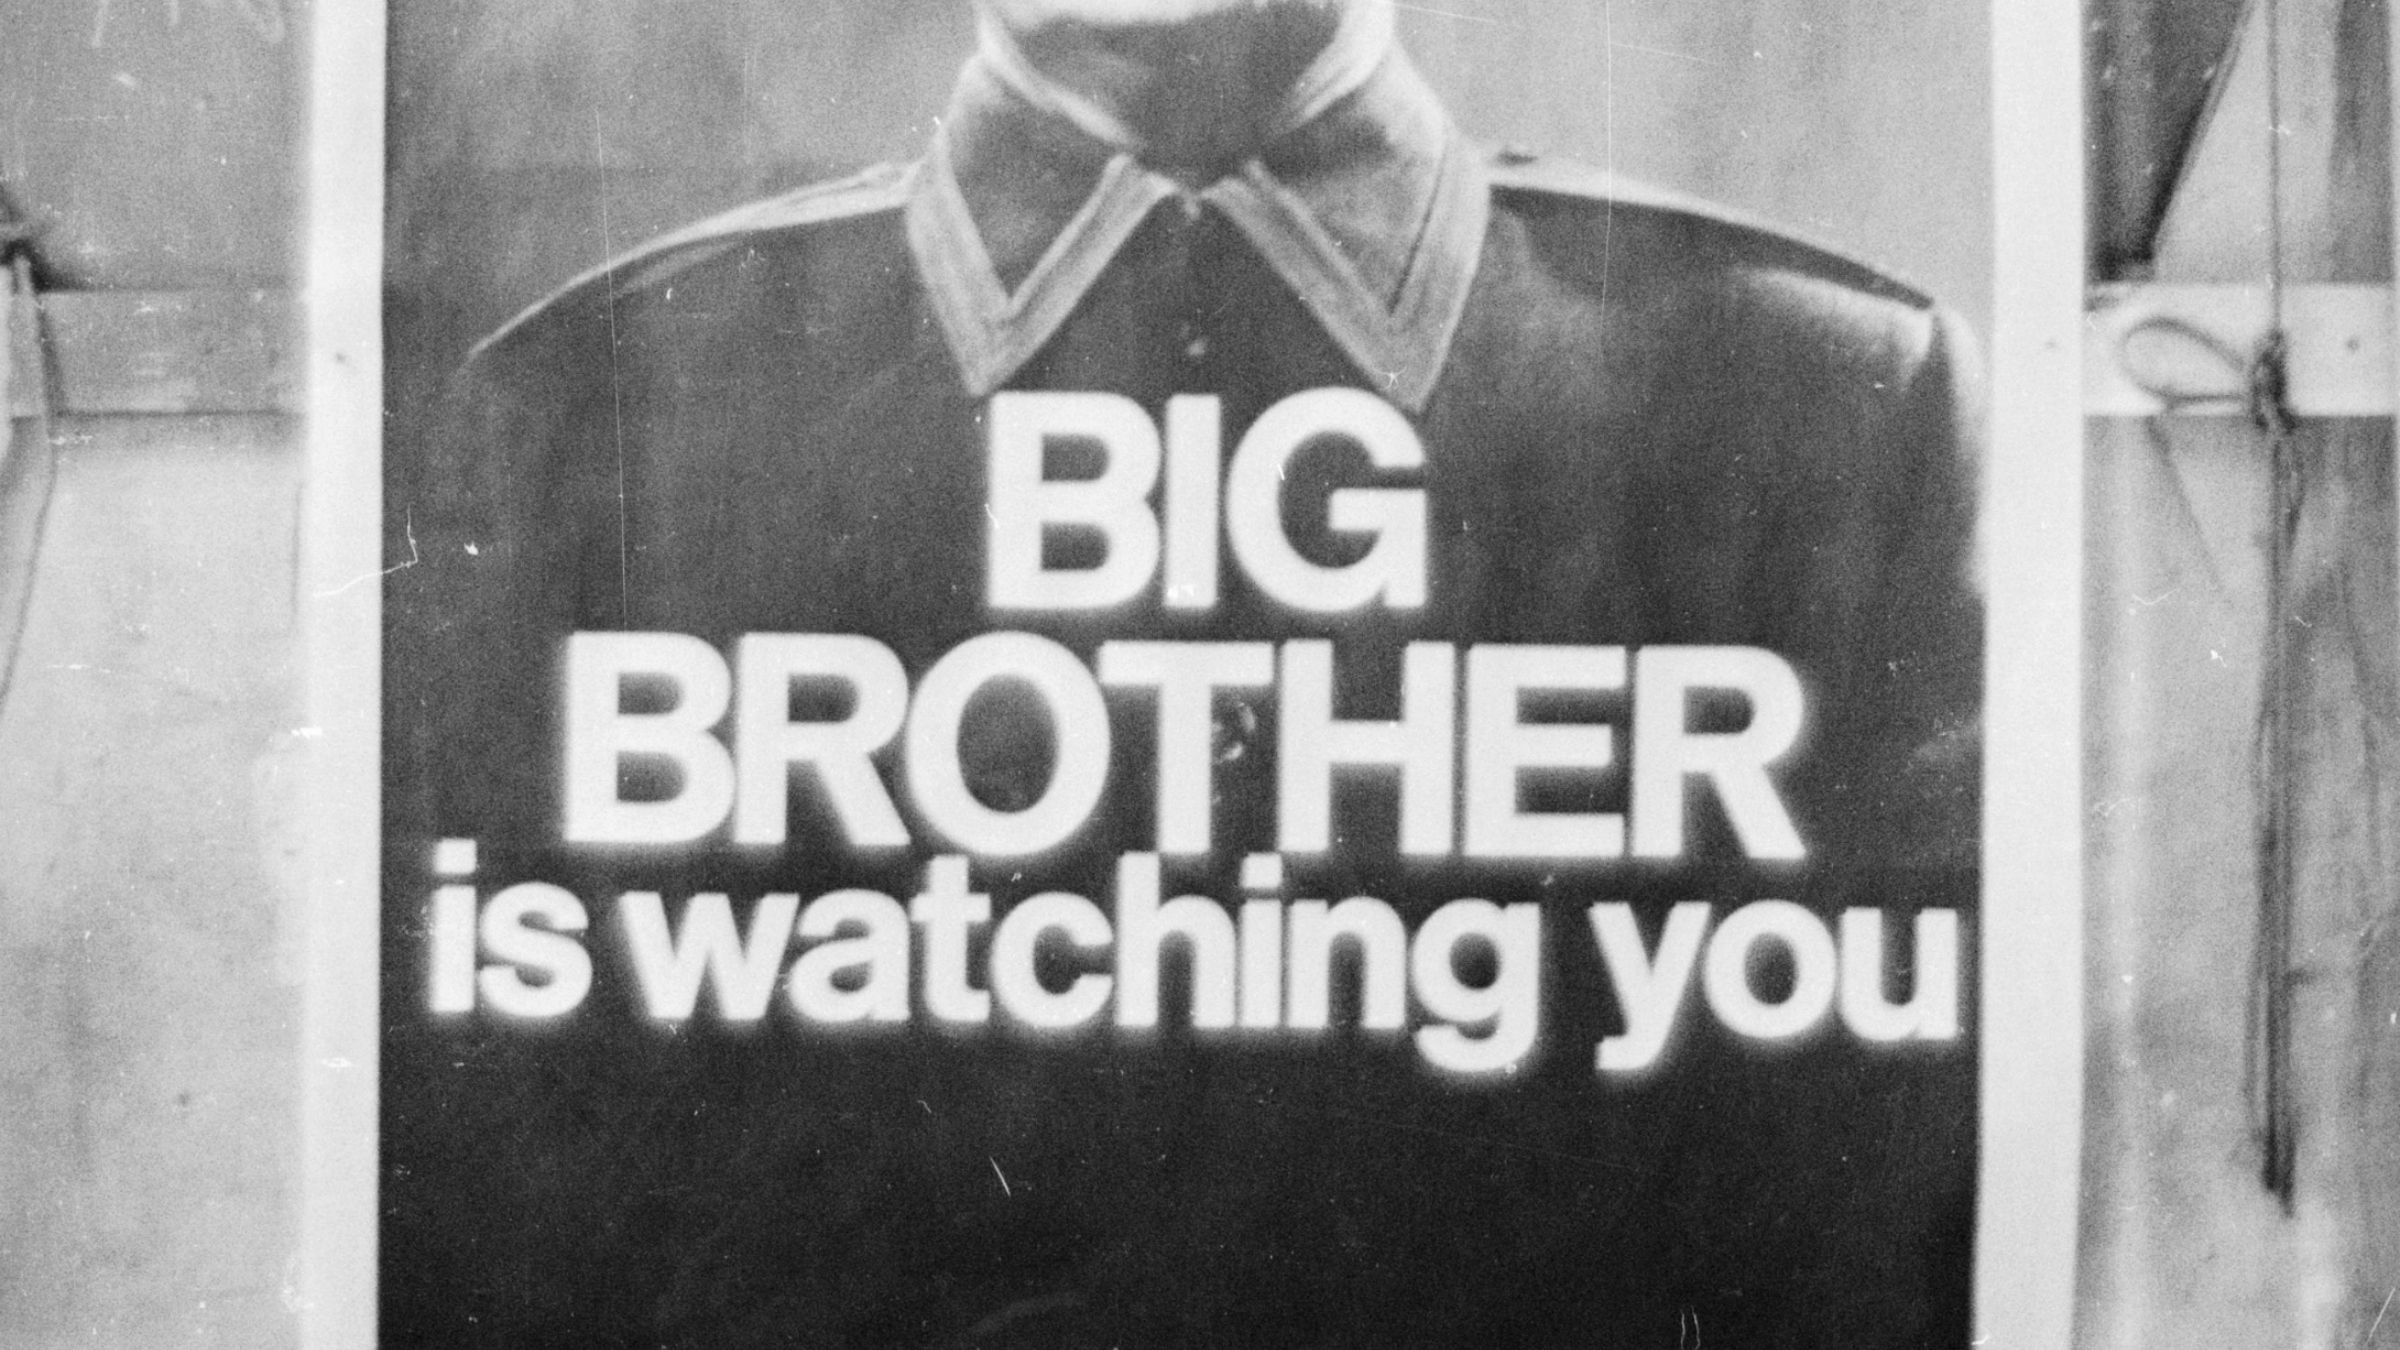 You probably didn't read the most telling part of Orwell's